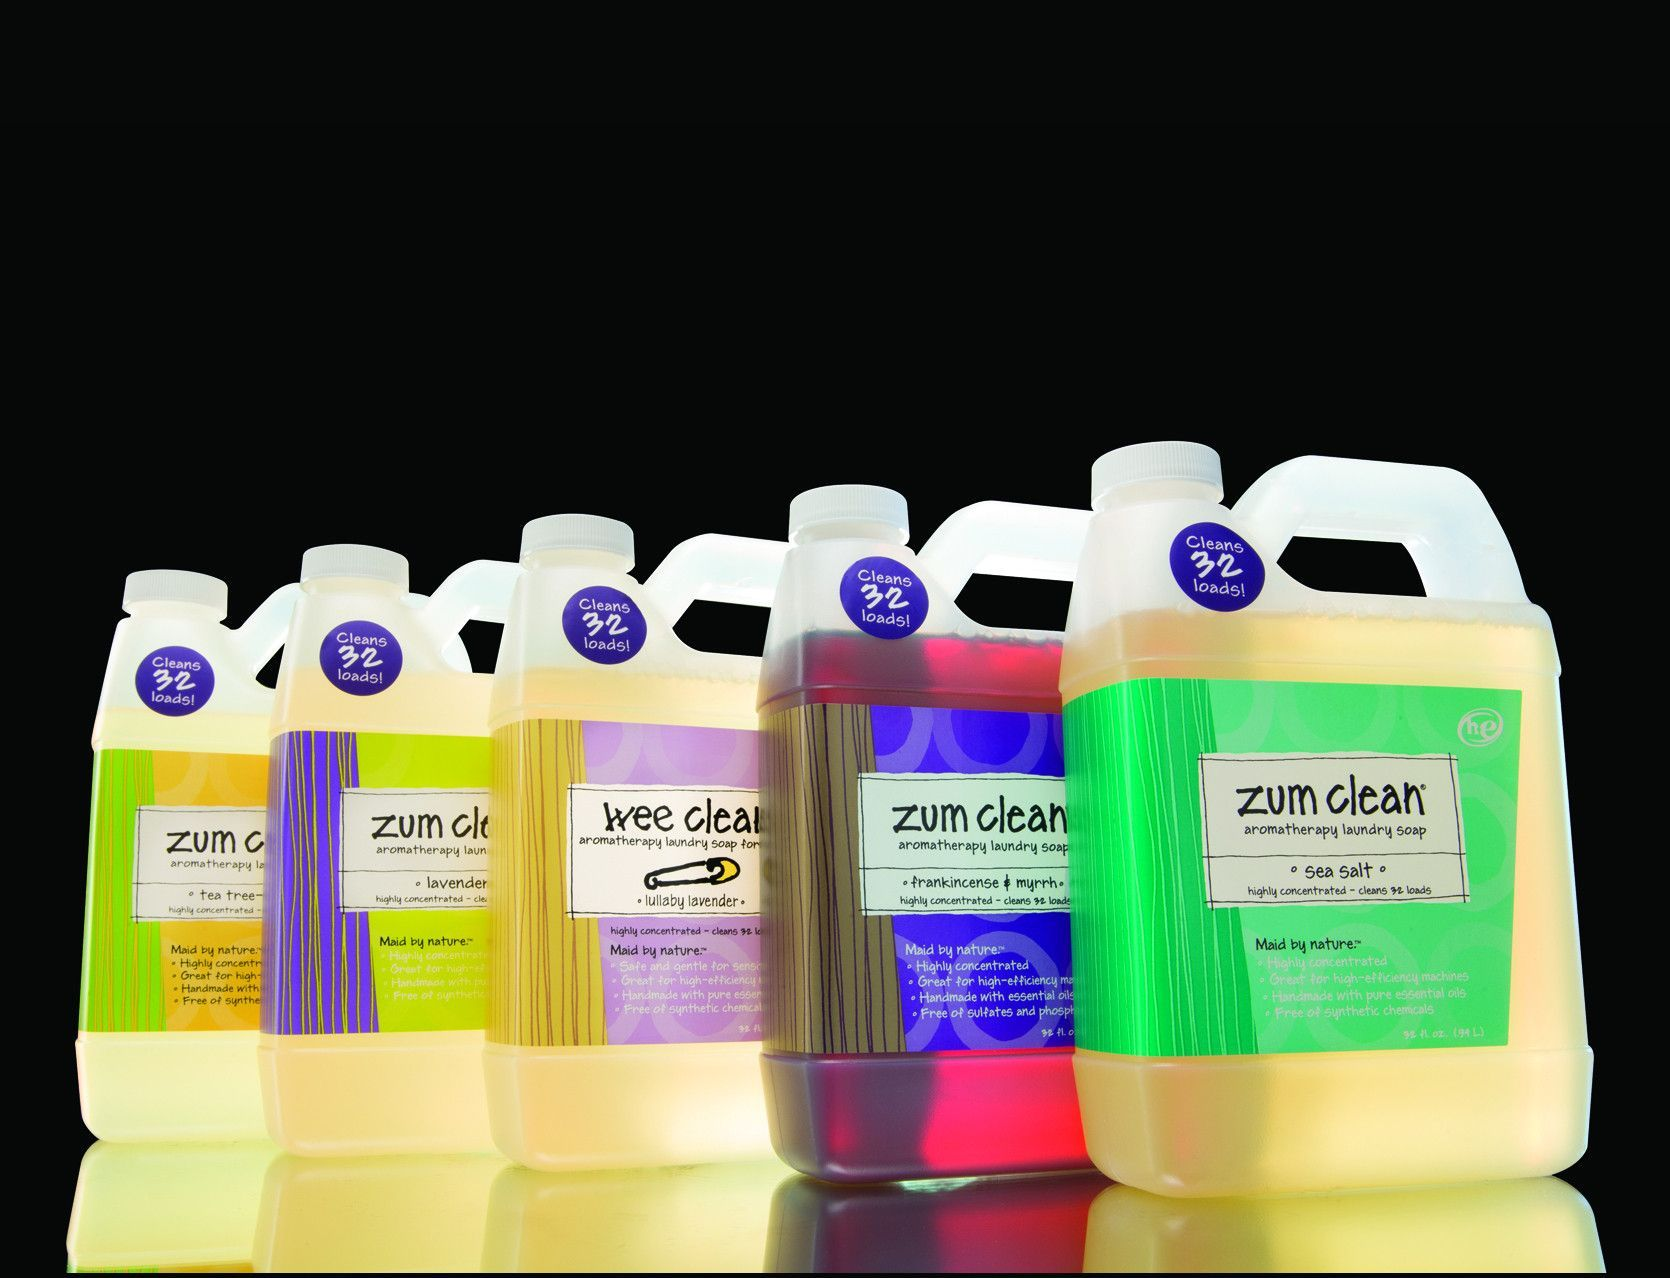 All Natural Zum Clean Laundry Soap Laundry Soap Clean Laundry Soap